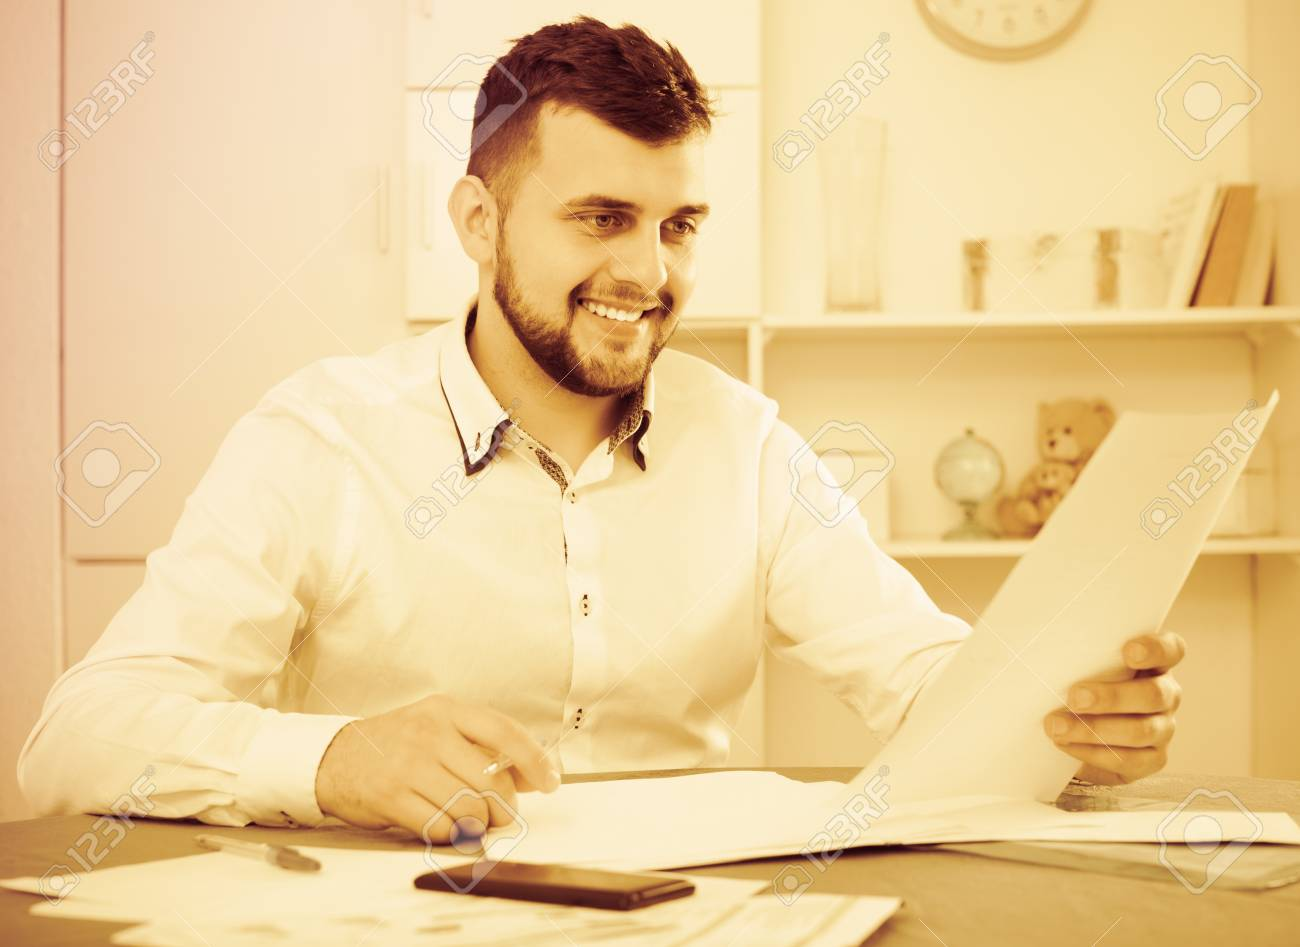 smiling male preparing agreement papers about finances at home stock